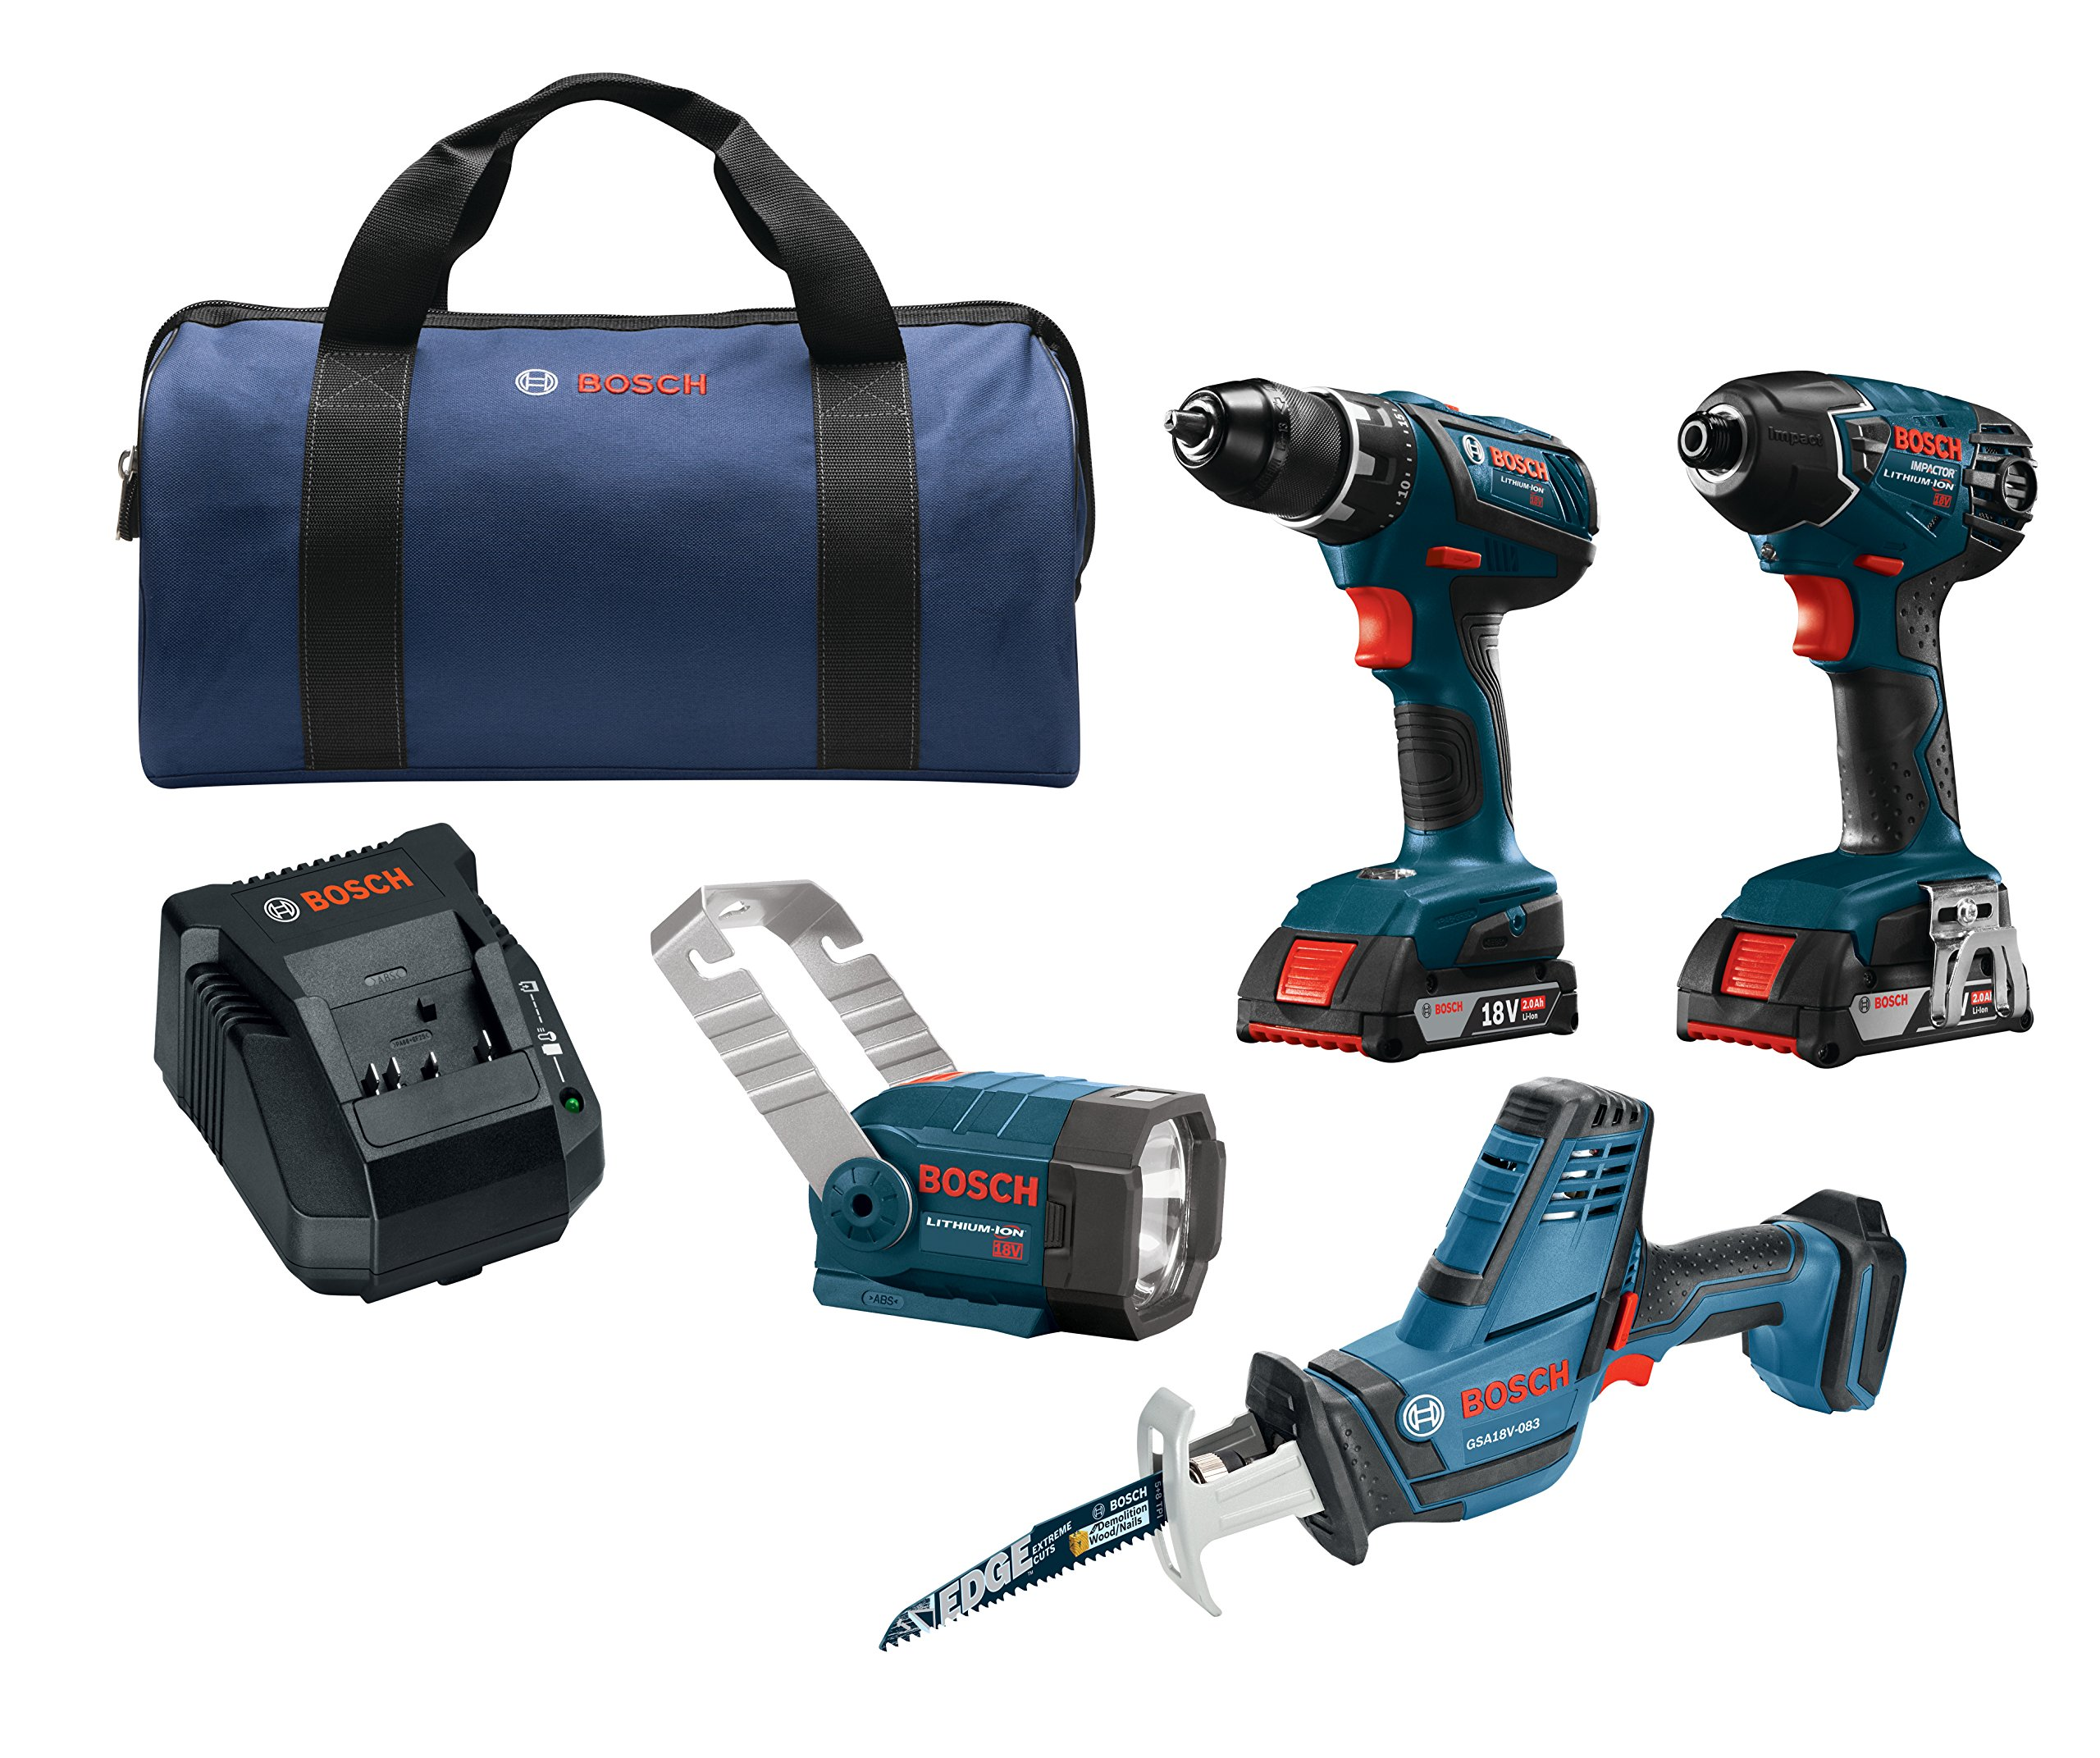 Bosch CLPK495A-181 18V 4-Tool Combo Kit with 1/2 In. Drill/Driver, 1/4 In. Hex Impact Driver, Compact Reciprocating Saw and Flashlight